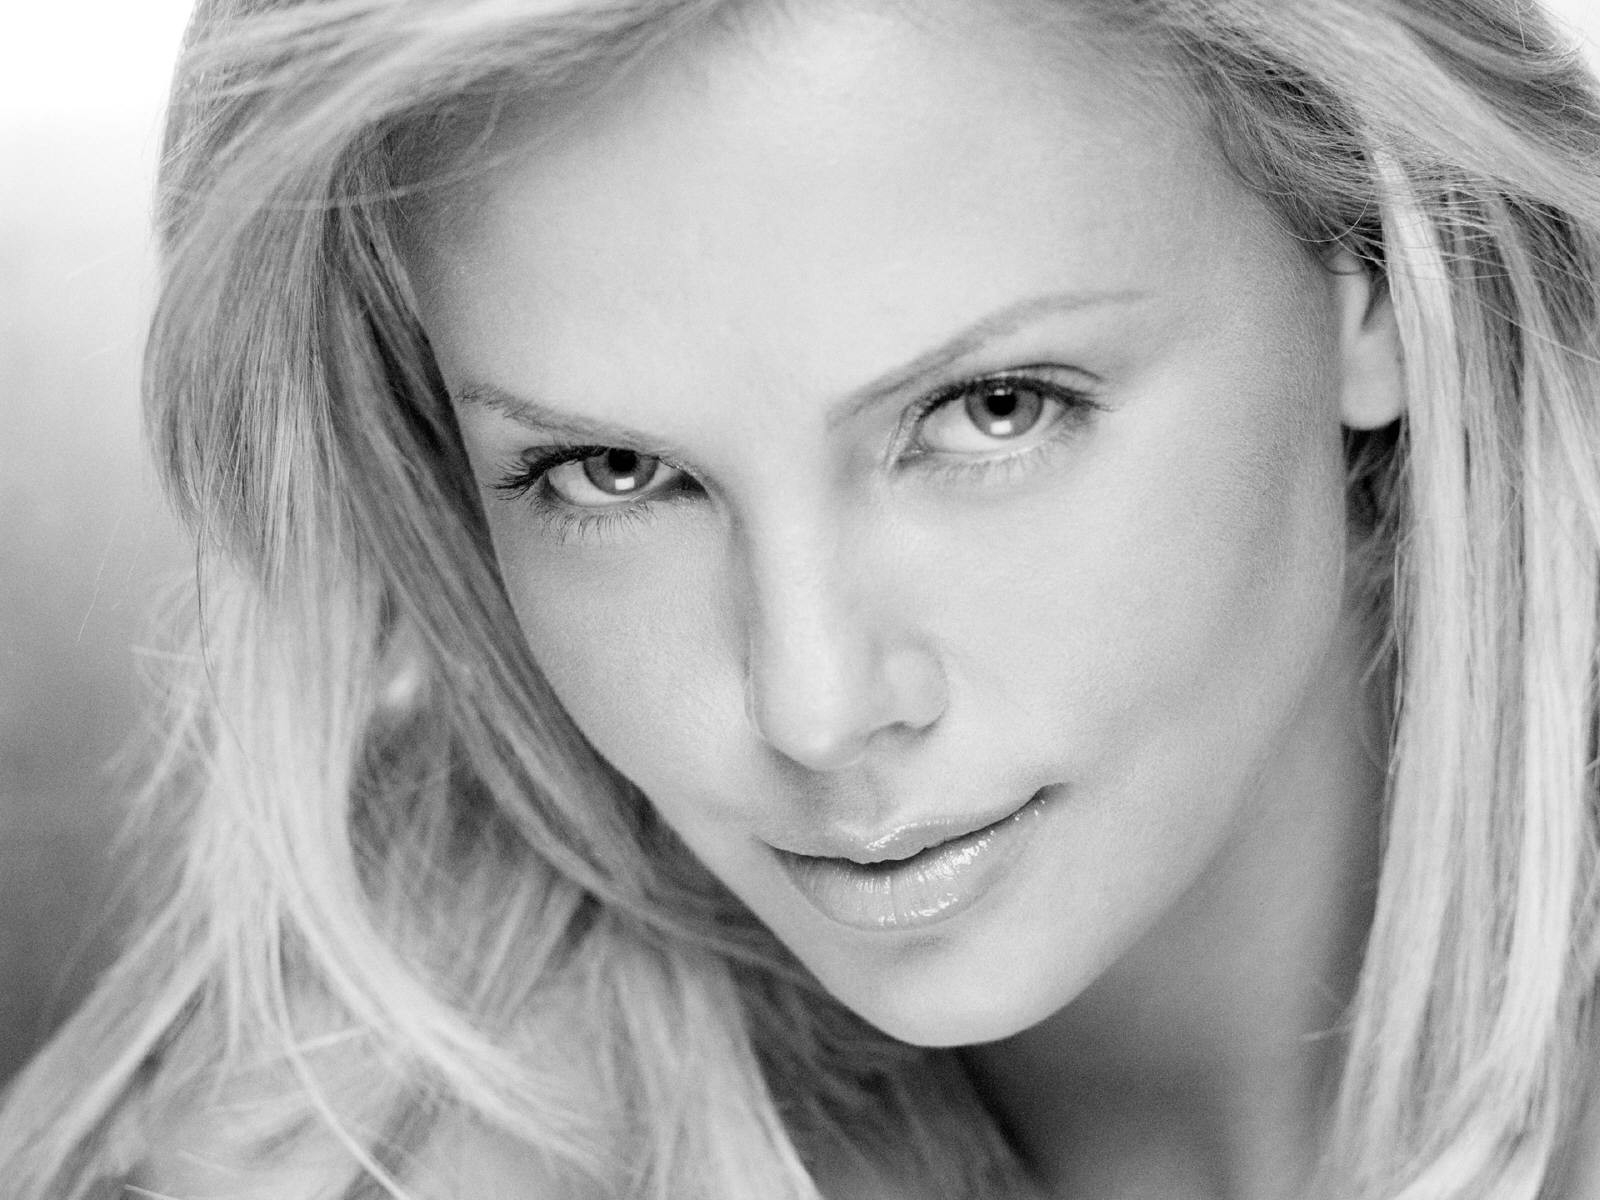 Wallpaper di Charlize Theron con una foto dell'attrice in b/n